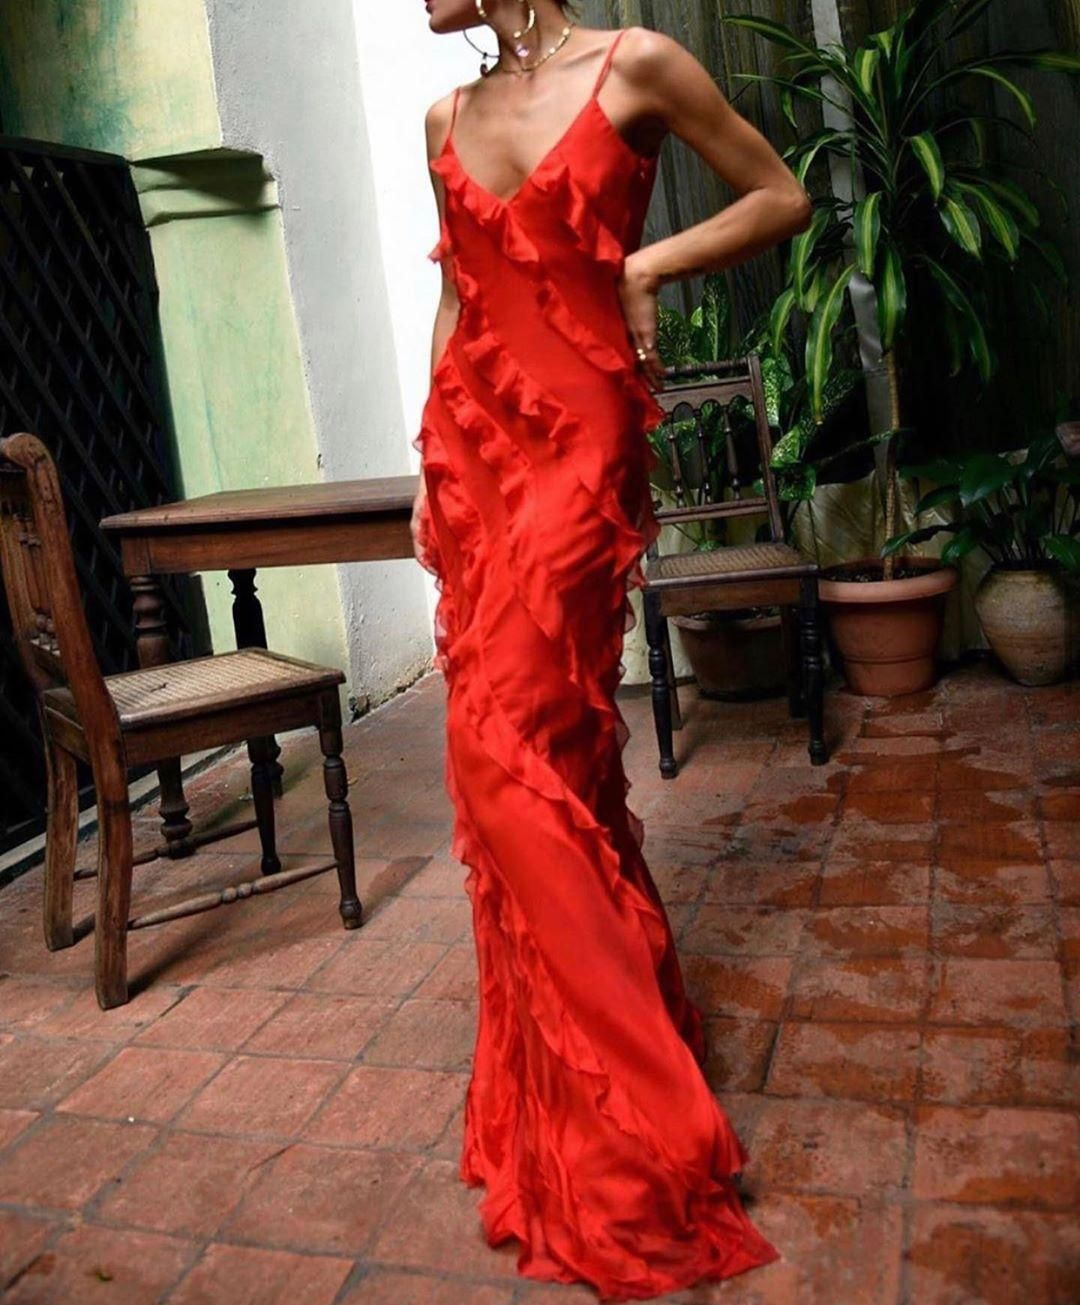 Find Out Where To Get The Dress Red Dress Maxi Fancy Dresses Event Dresses [ 1305 x 1080 Pixel ]